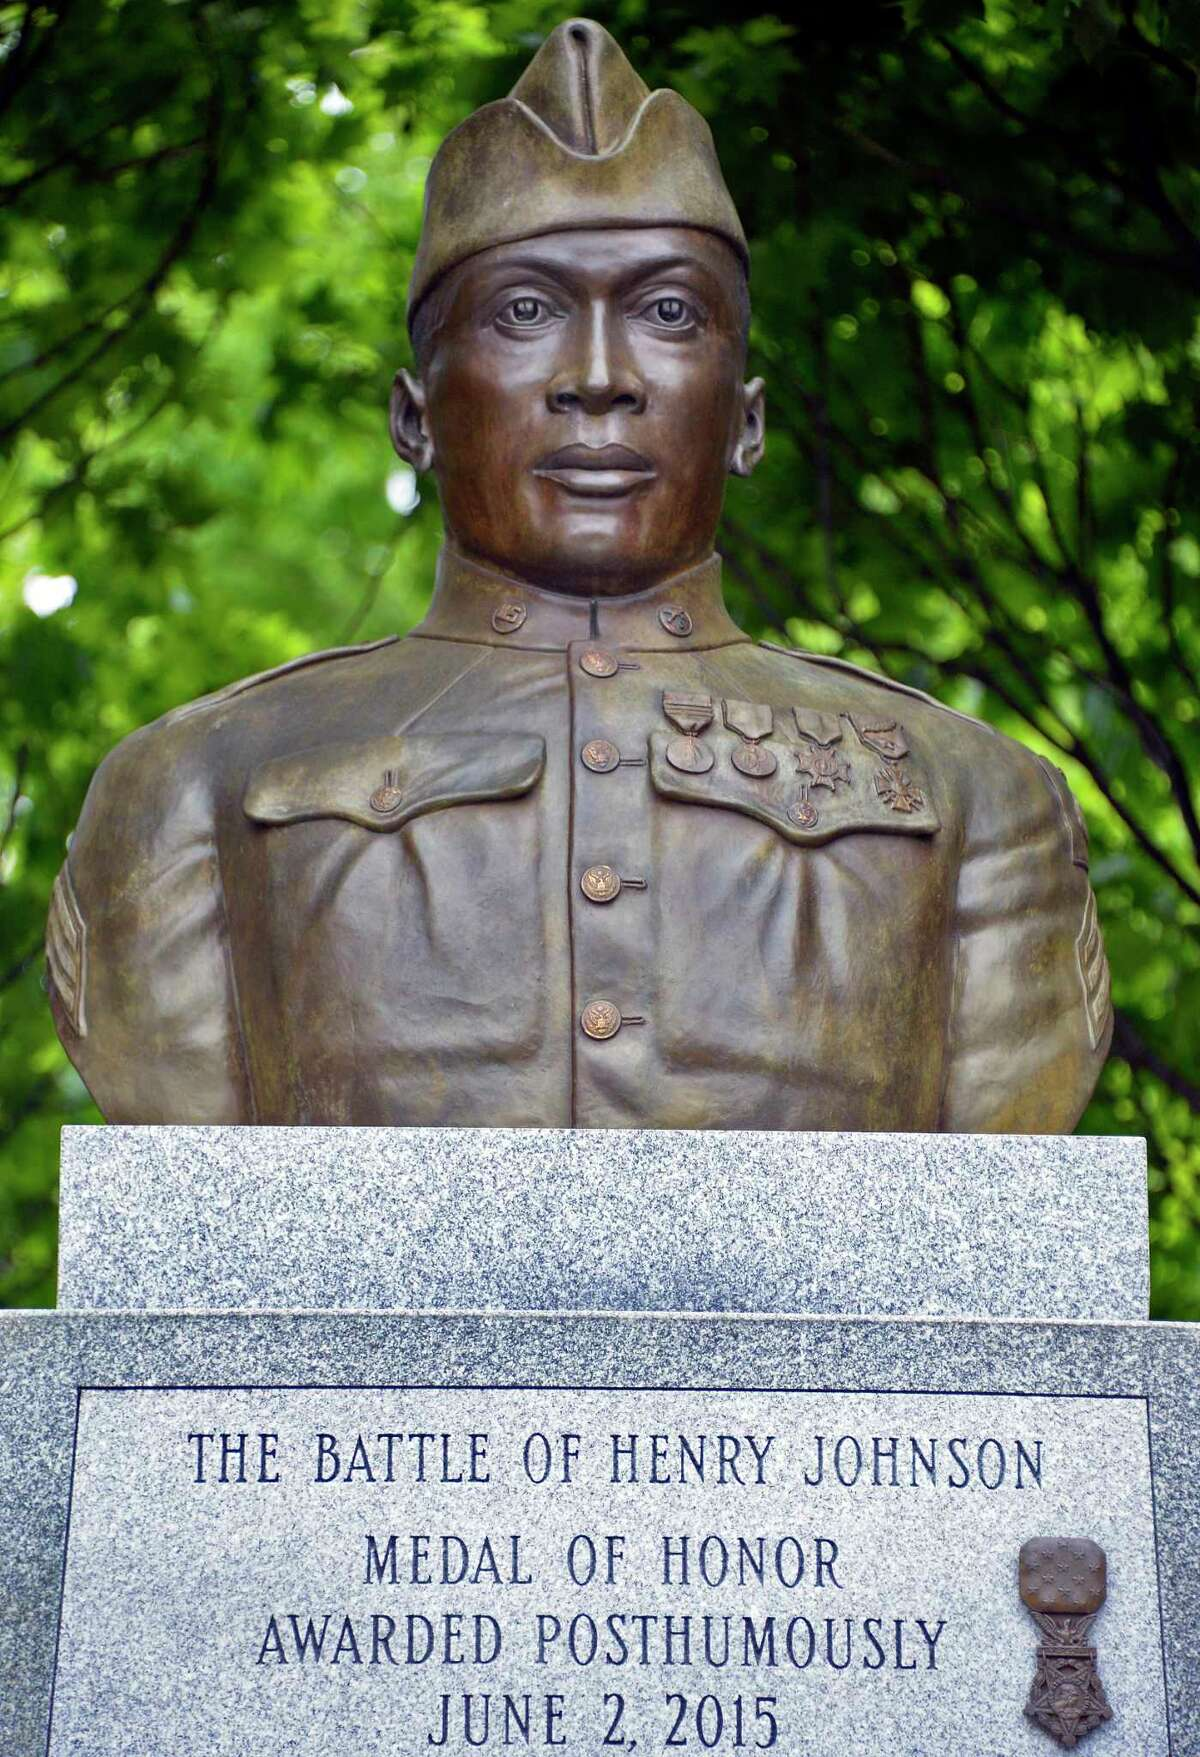 The Sgt. Henry Johnson statue in Washington Park. Johnson defeated nearly two dozen German soldiers in an intense battle in World War I, an act that won him the Medal of Honor.